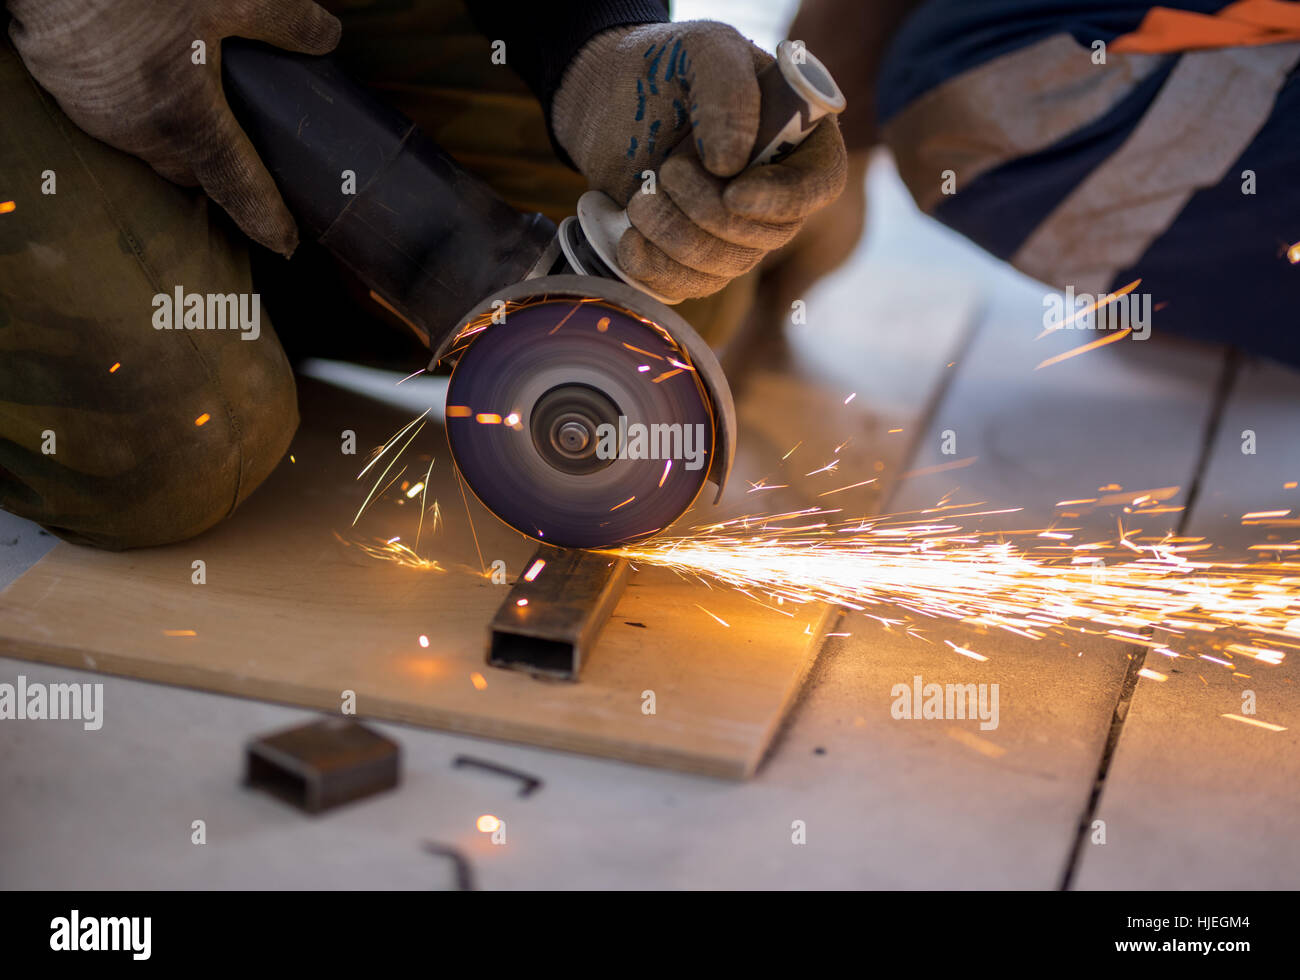 Cutting metal with angle grinder. - Stock Image